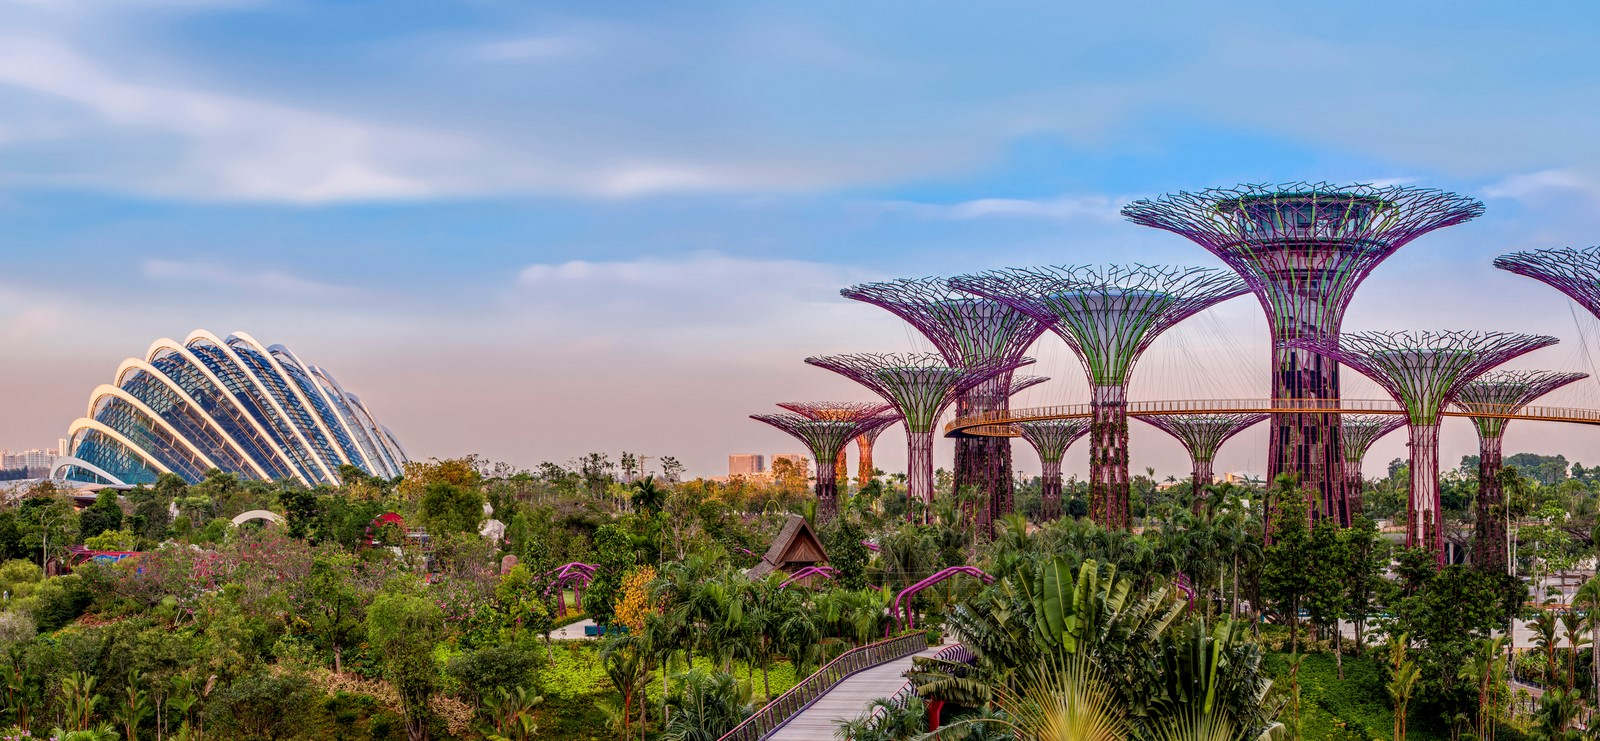 Architecture in Singapore - Gardens by the Bay - Sheet1